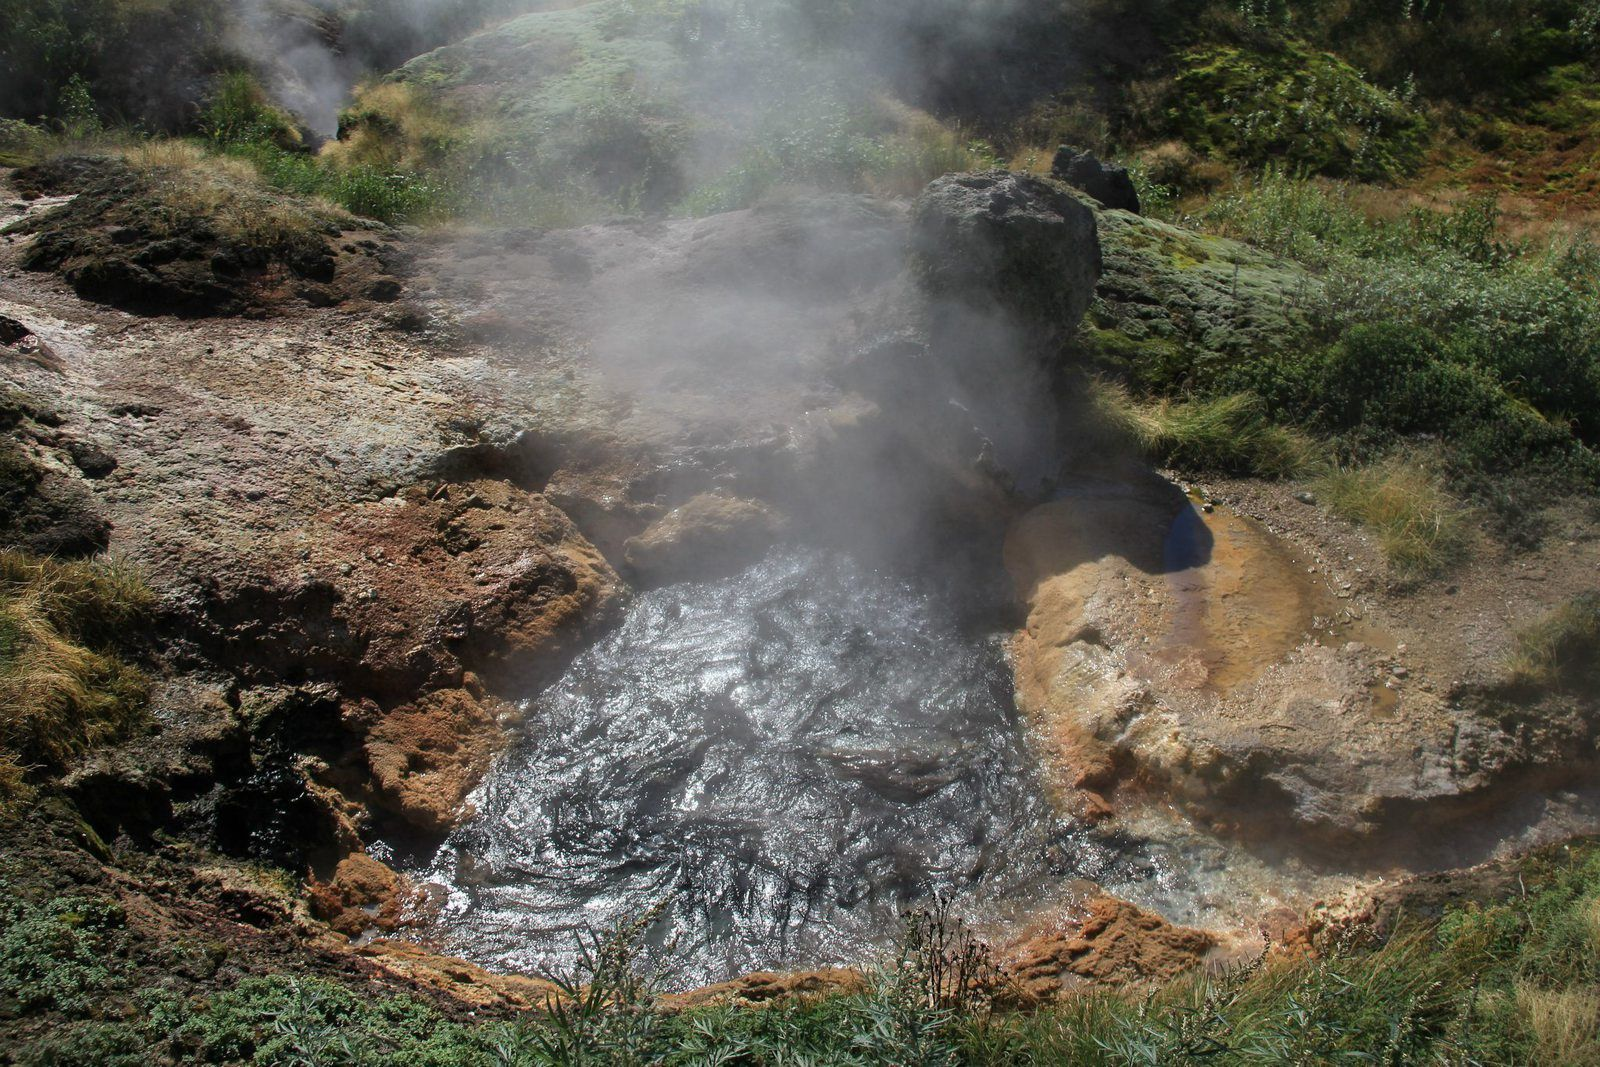 Uzon caldera - the Valley of Geysers - a hot spring - photo Antony Van Eeten 2011